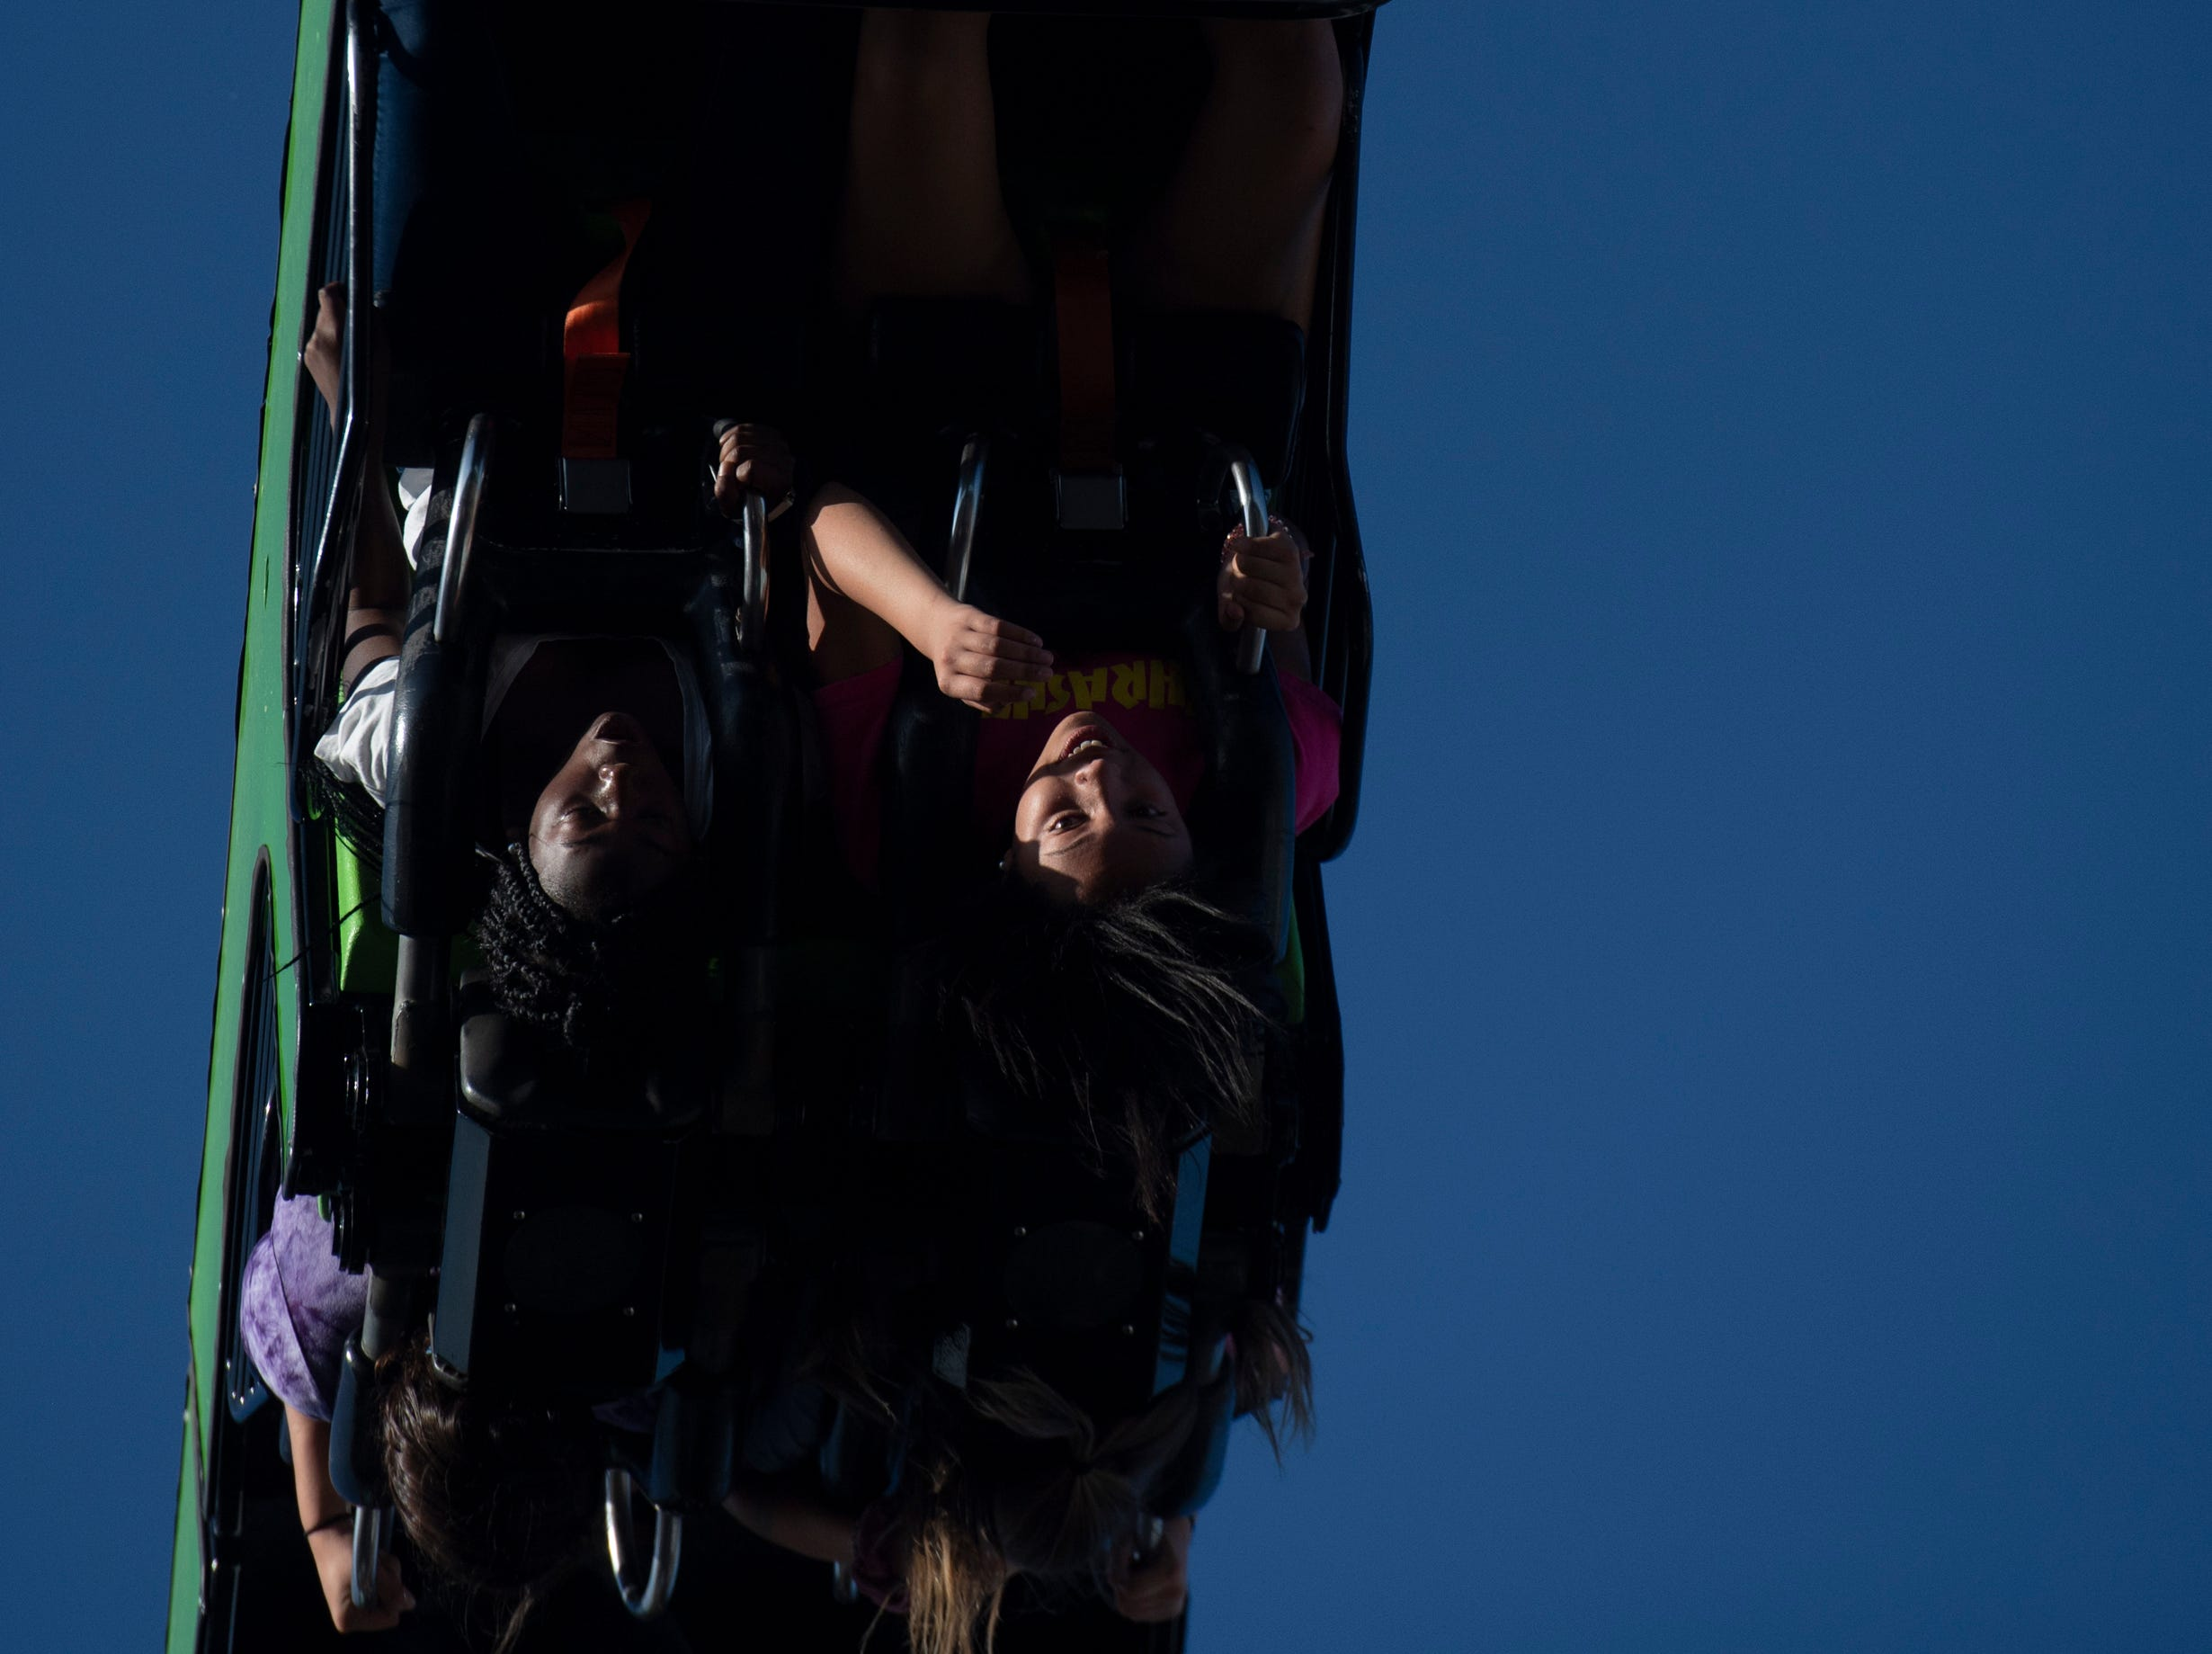 Brantiya Ellis (right), 14, and Zy'Kia Brown, 14, of Anderson ride the Mantis on opening day of The Great Anderson County Fair Thursday, May 2, 2019.